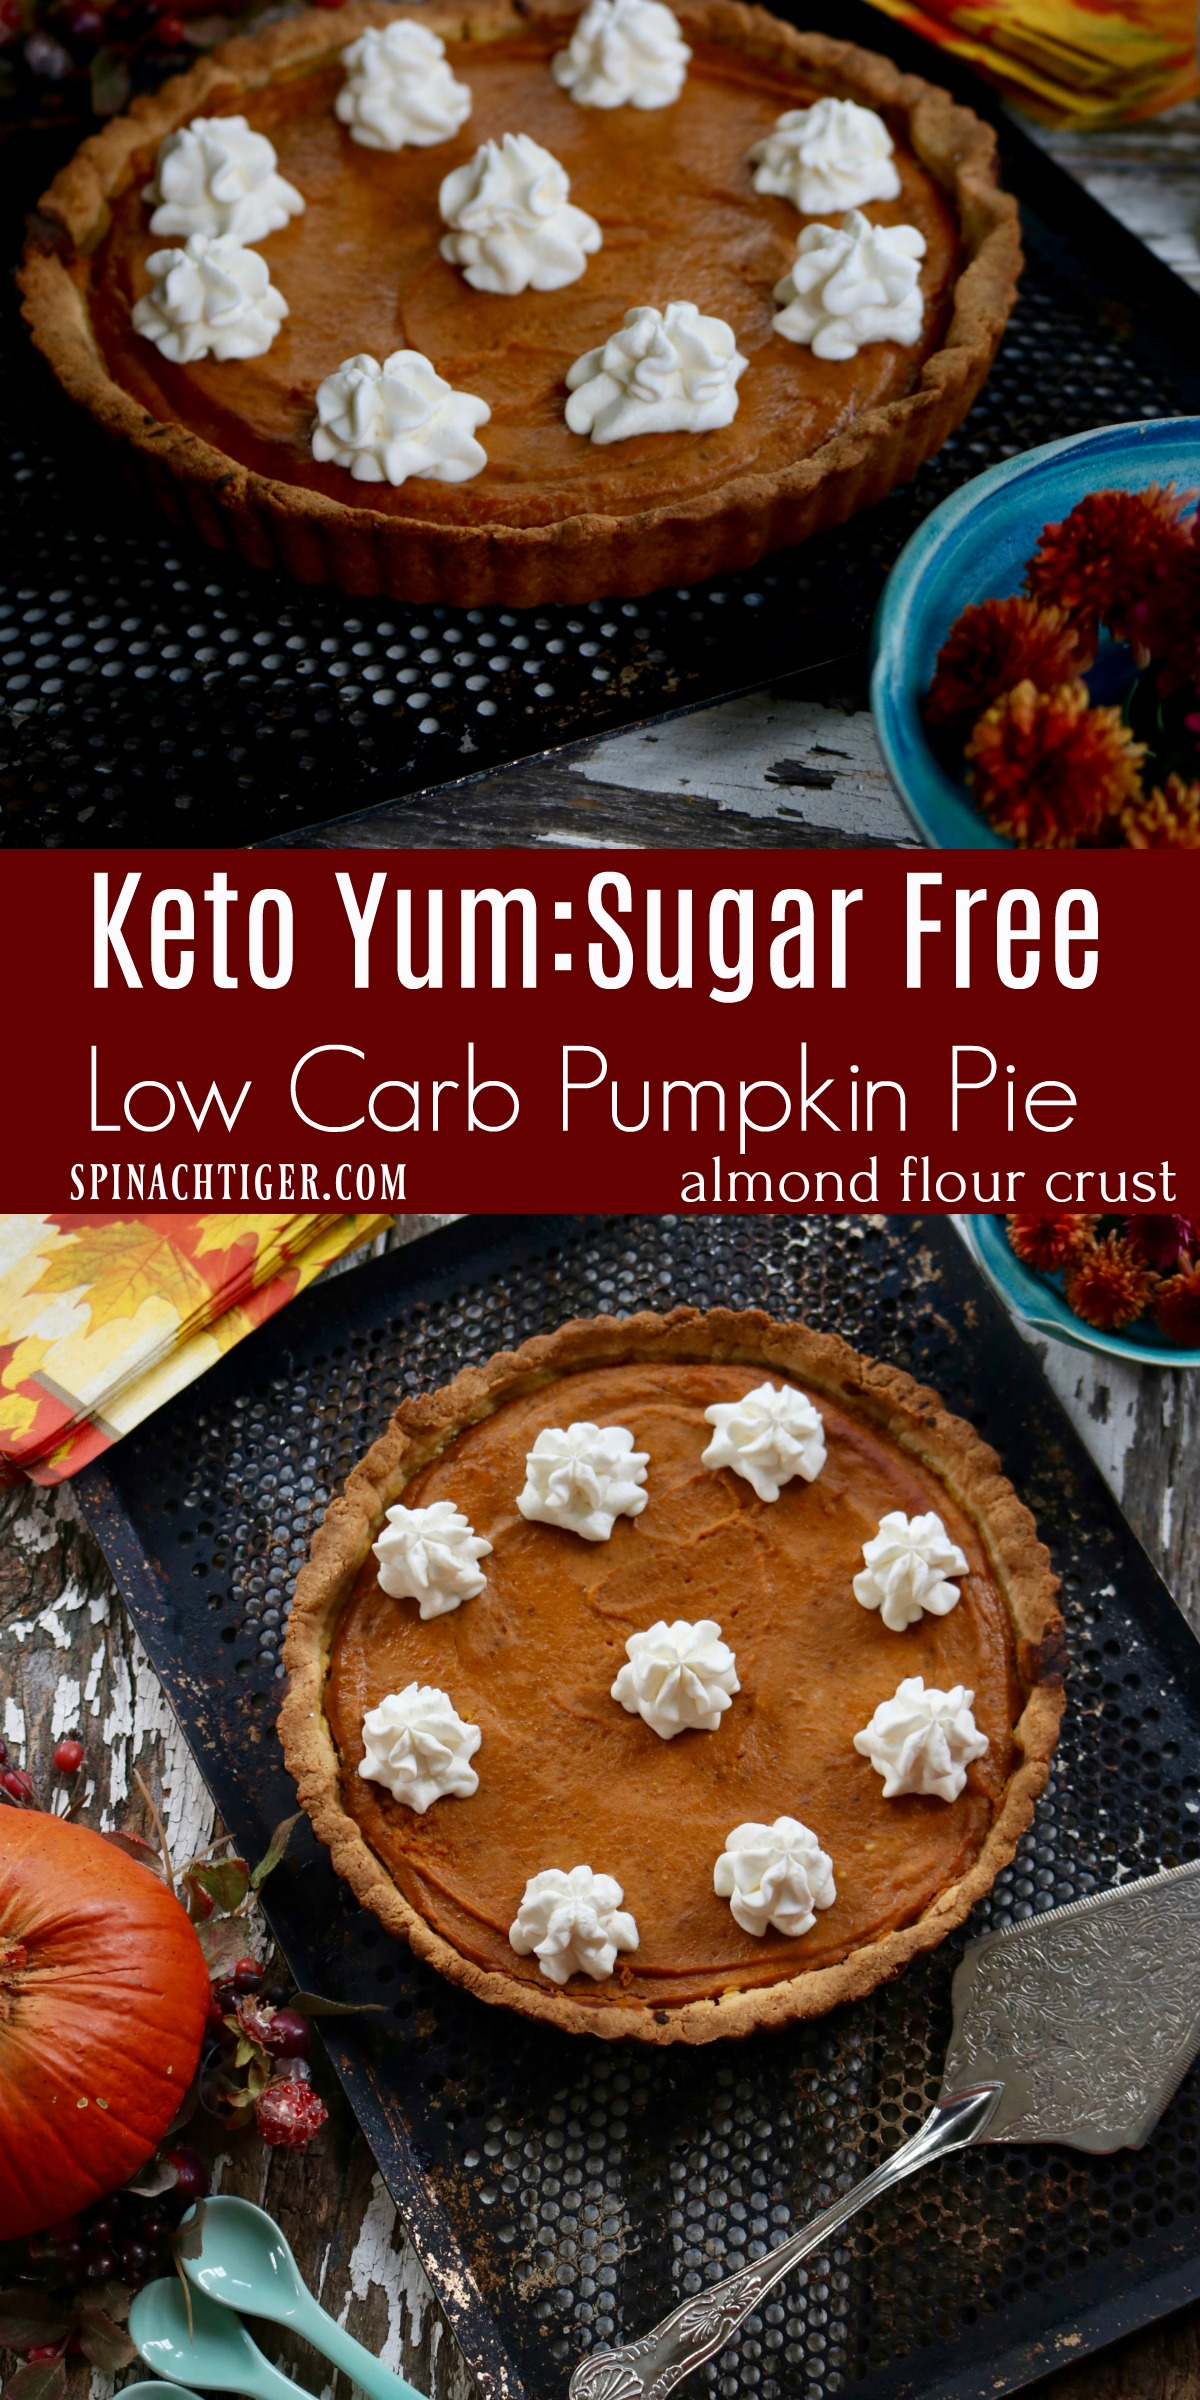 Low Carb Pumpkin Pie , 7 net carbs, Keto Recipe from Spinach Tiger